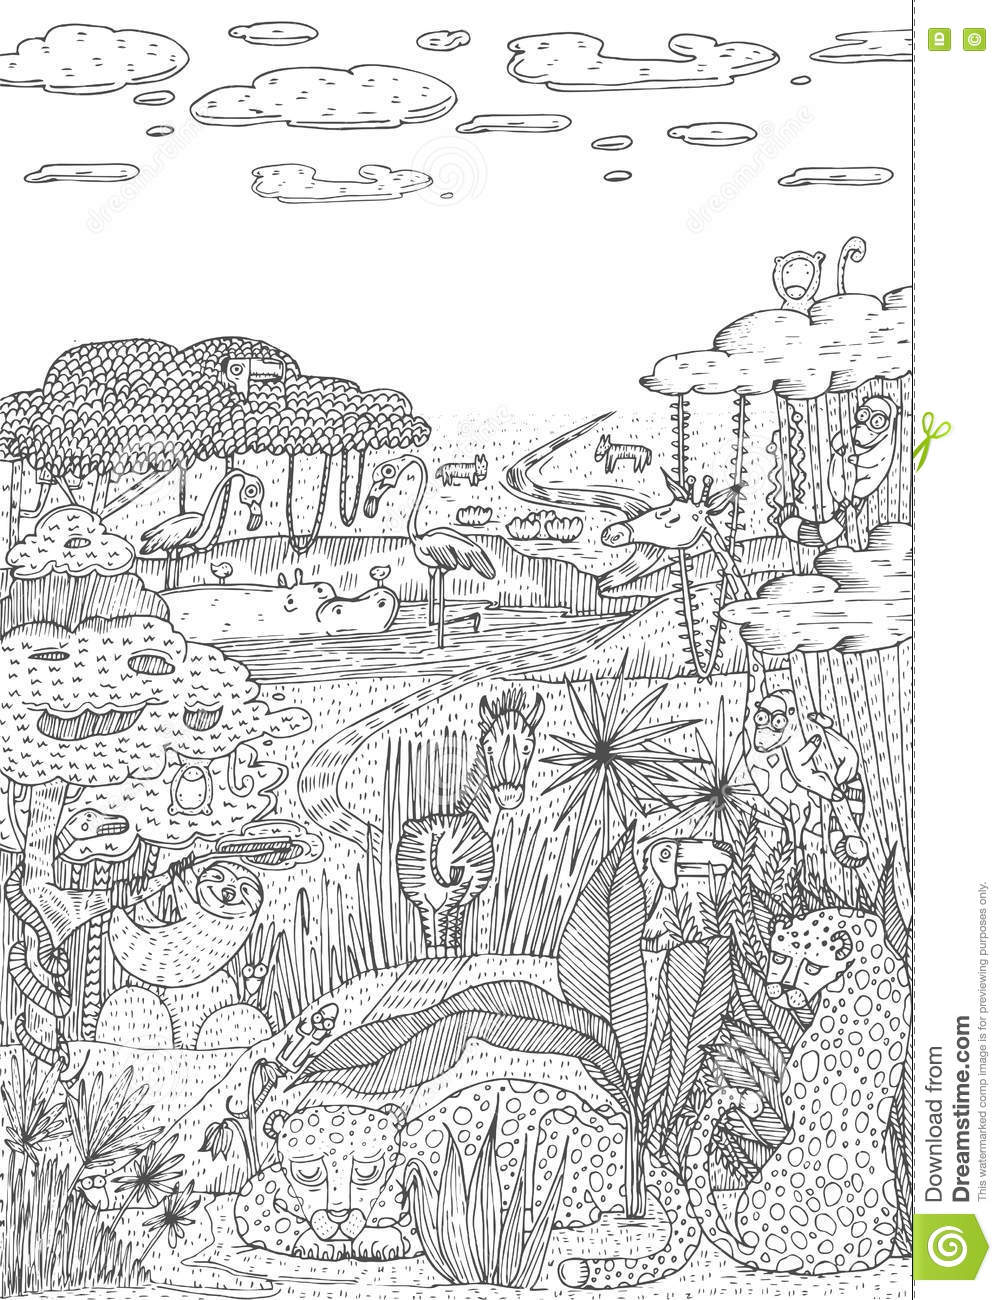 Line Art Jungle : Wild life in jungle drawn line art style coloring book